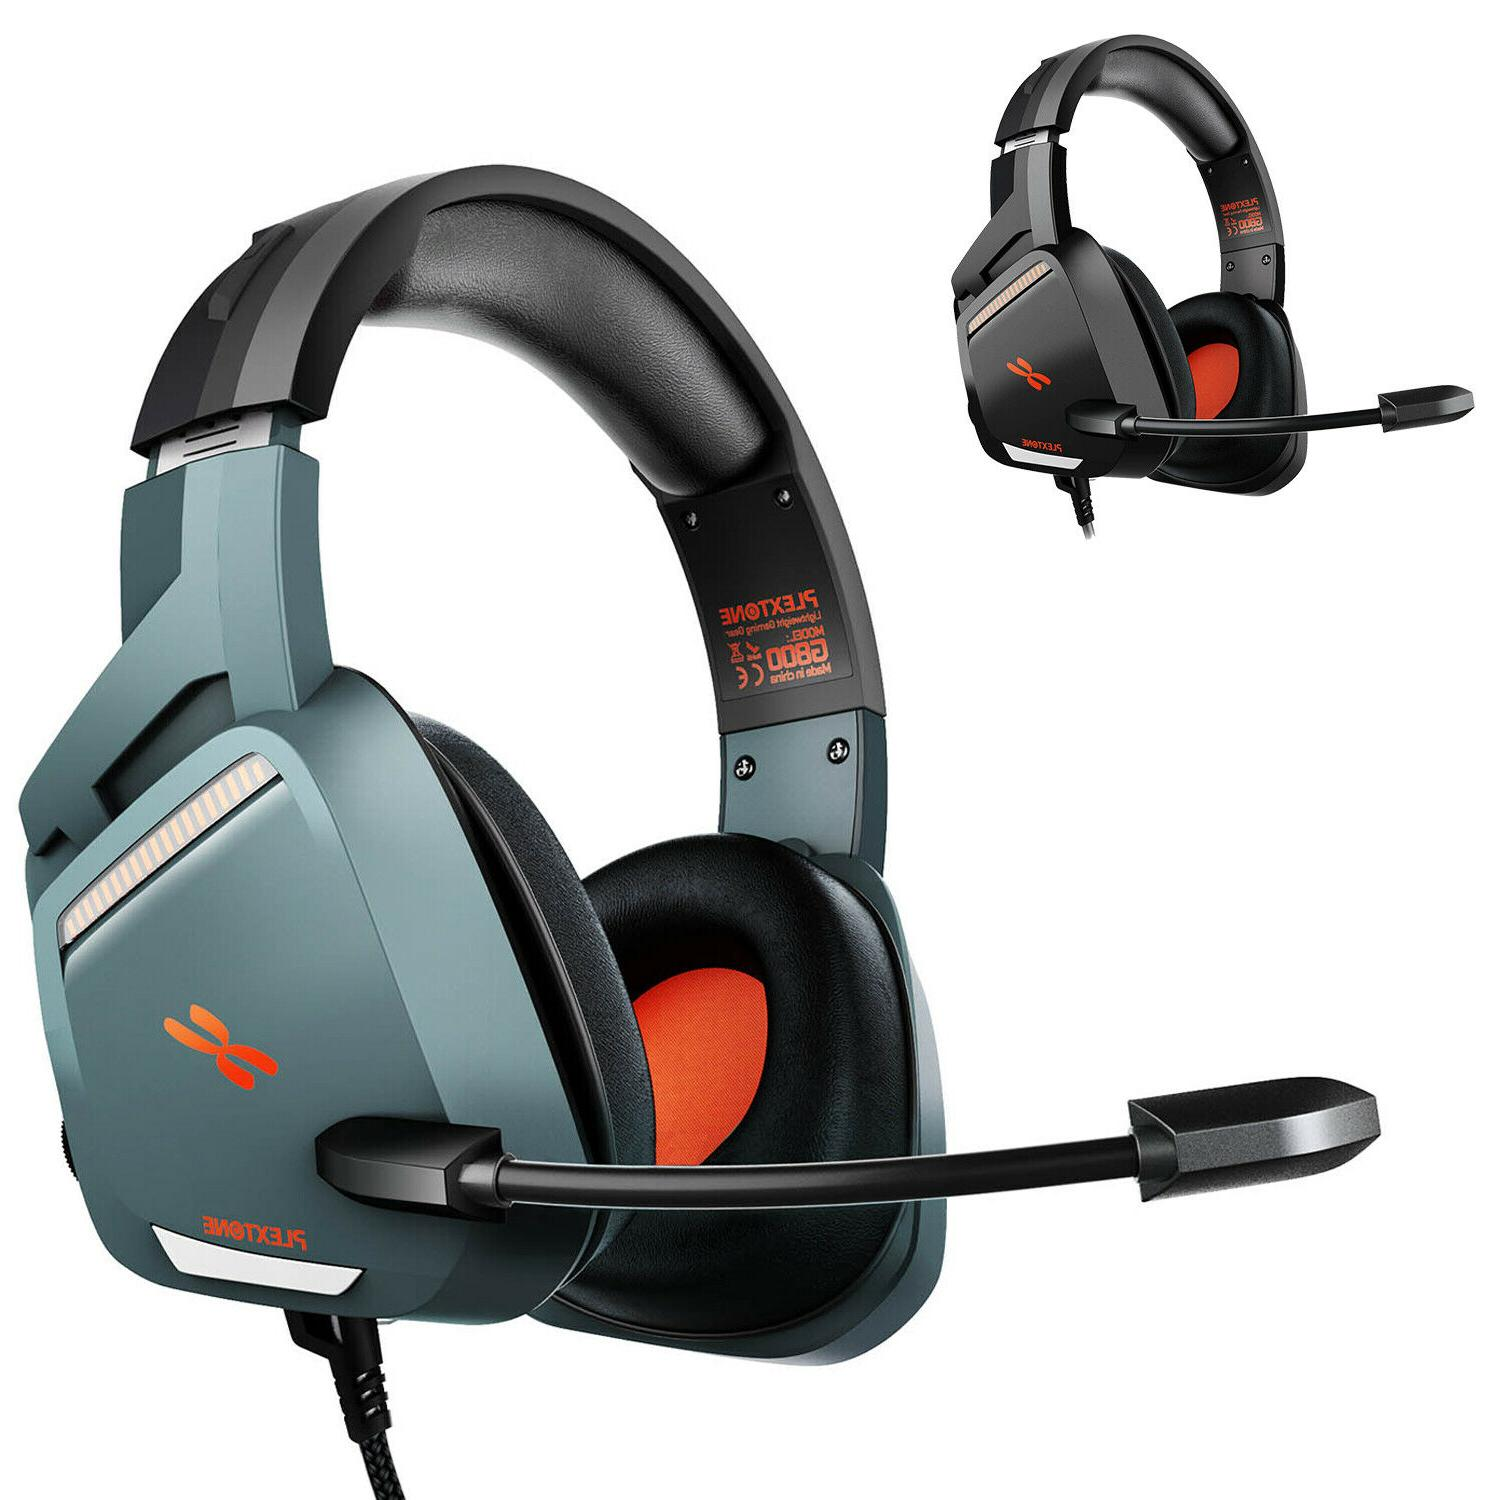 stereo gaming headset noise cancelling over ear